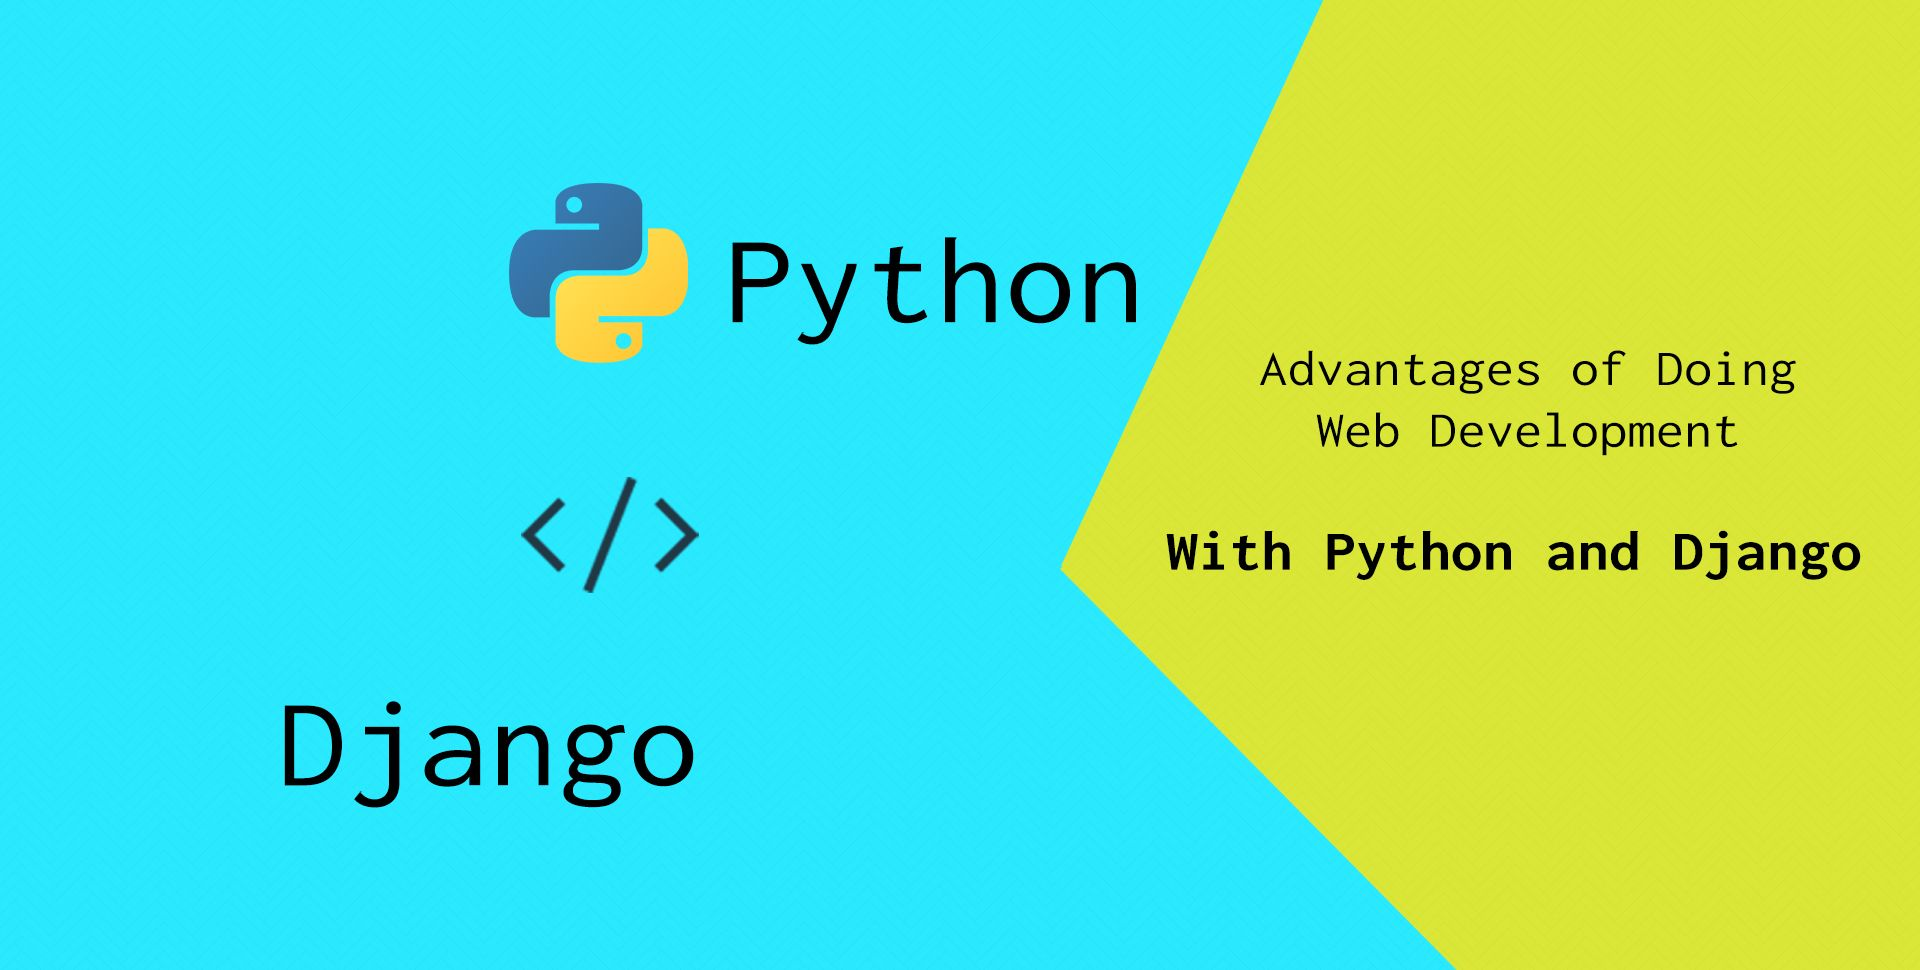 8 quirky benefits of using Django and Python For Web